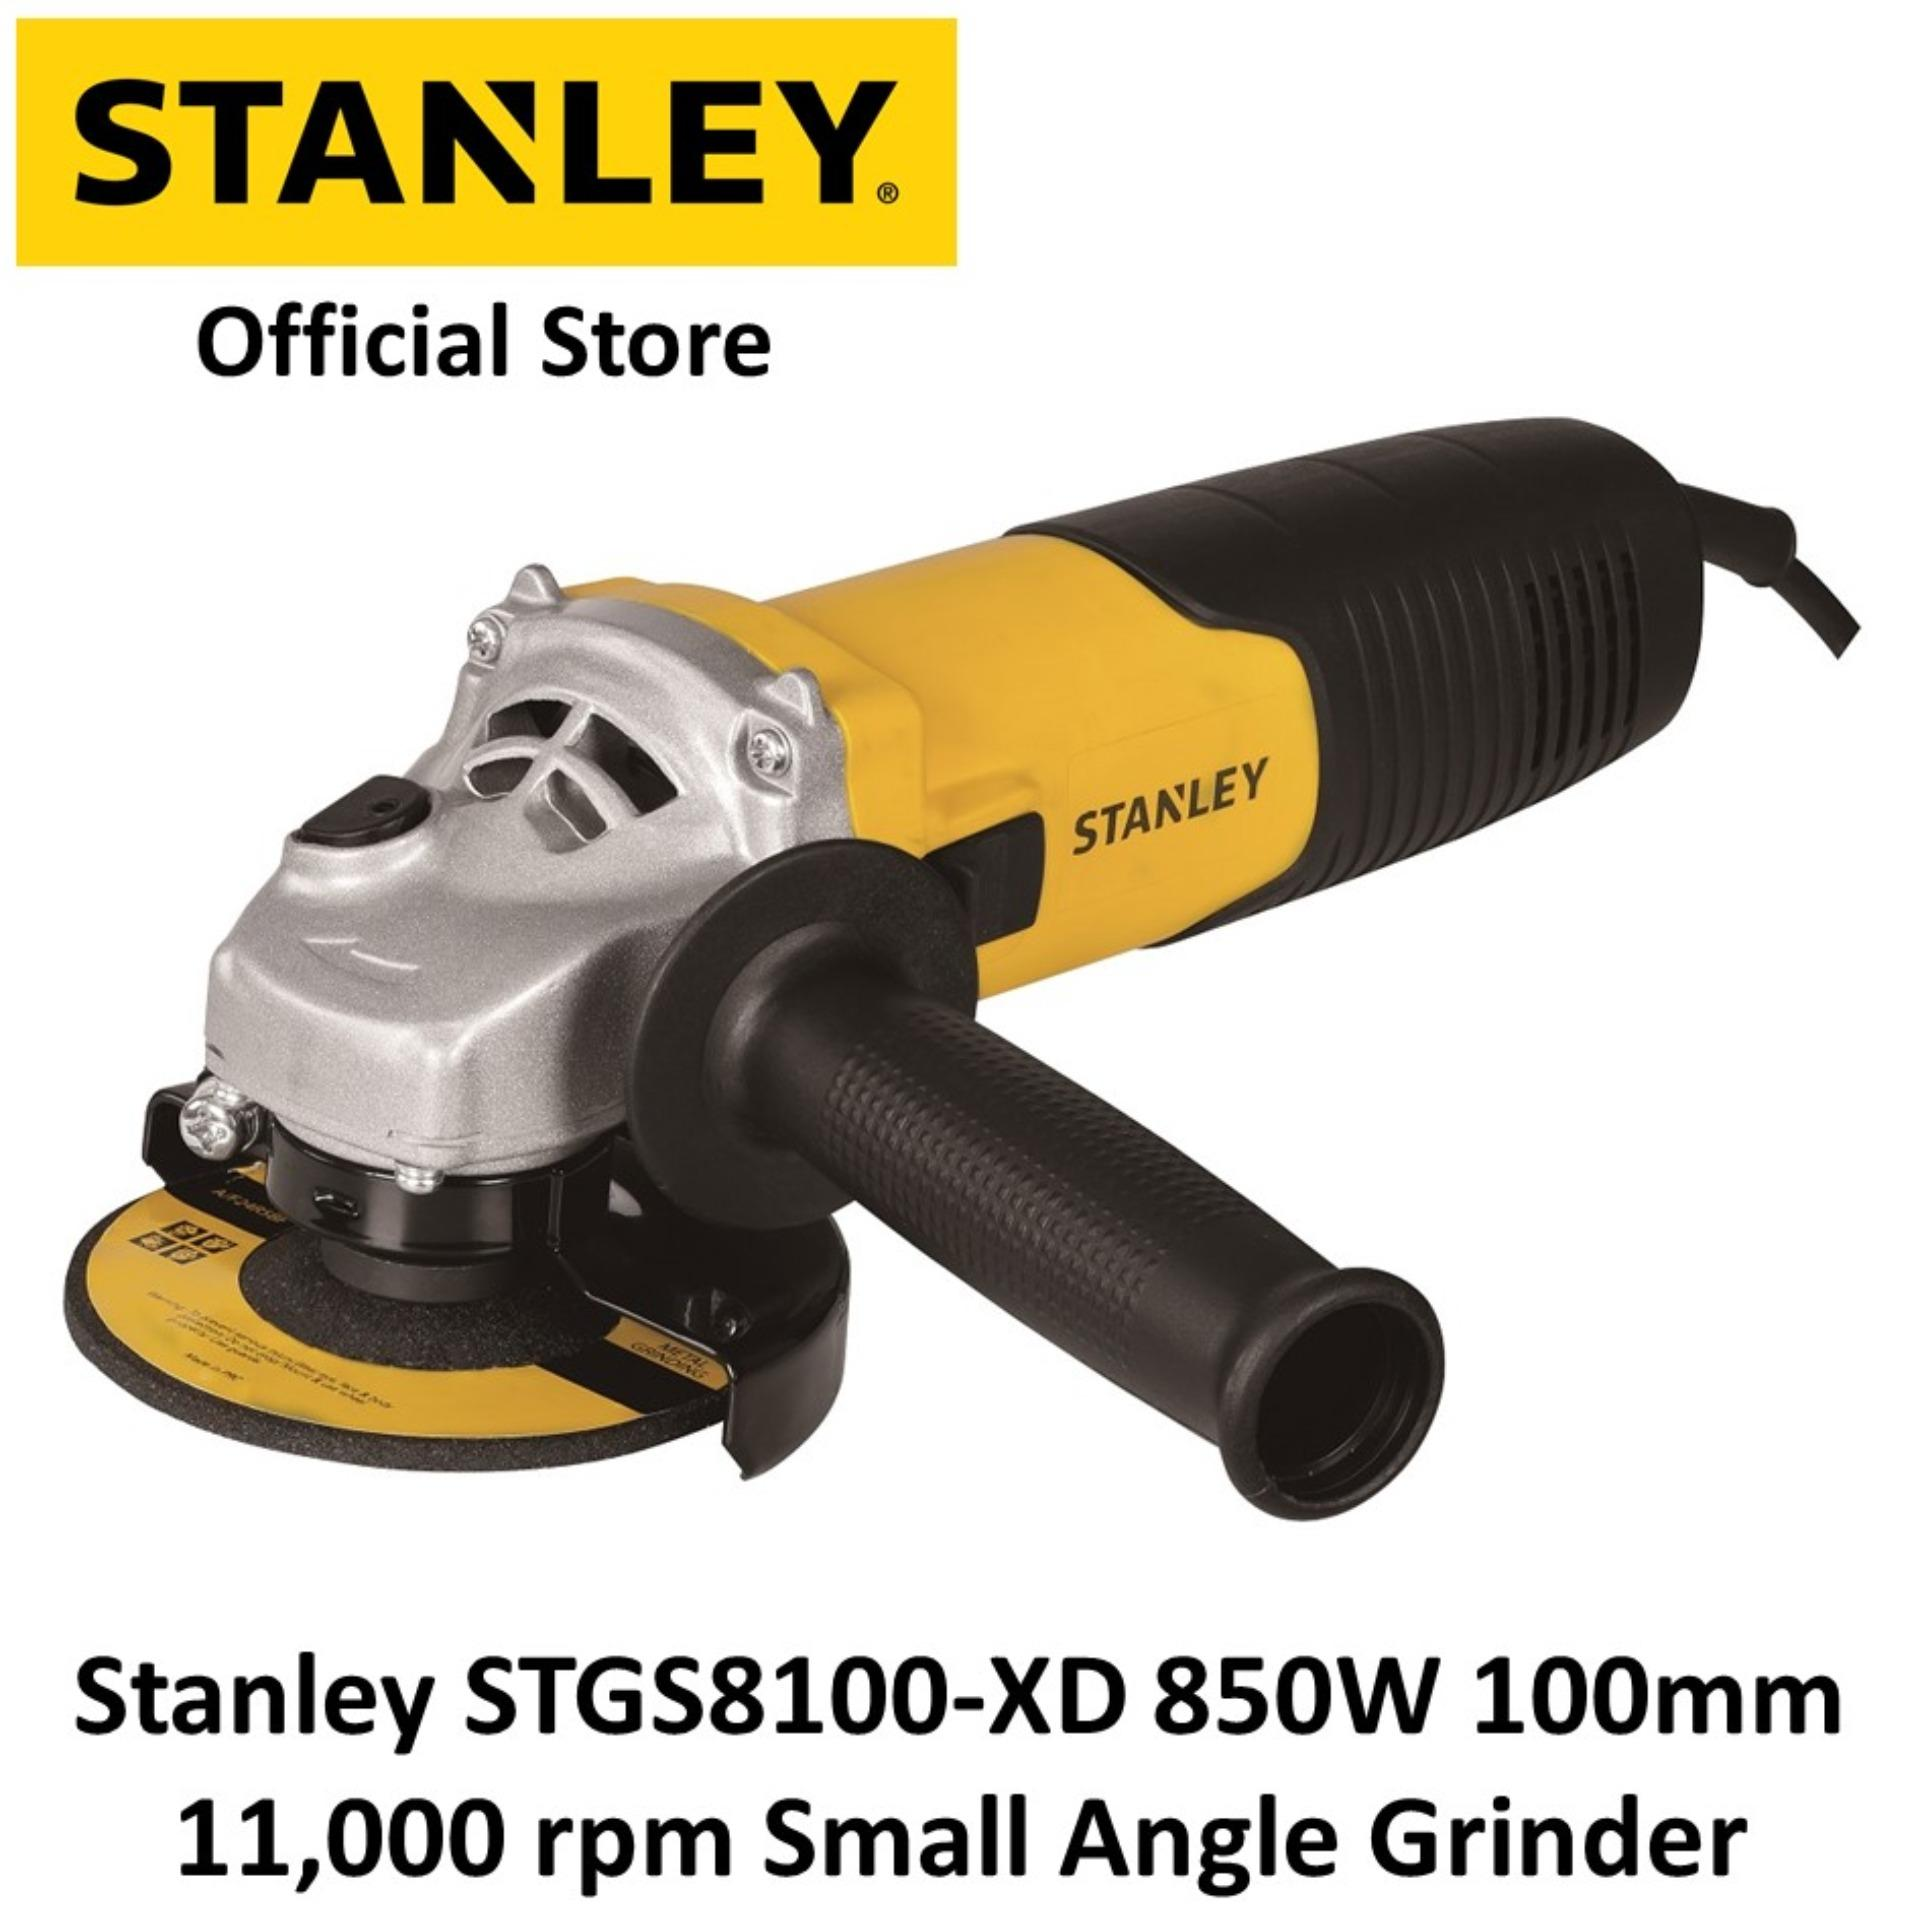 Stanley STGS8100-XD 850W 100mm 11,000 rpm Small Angle Grinder